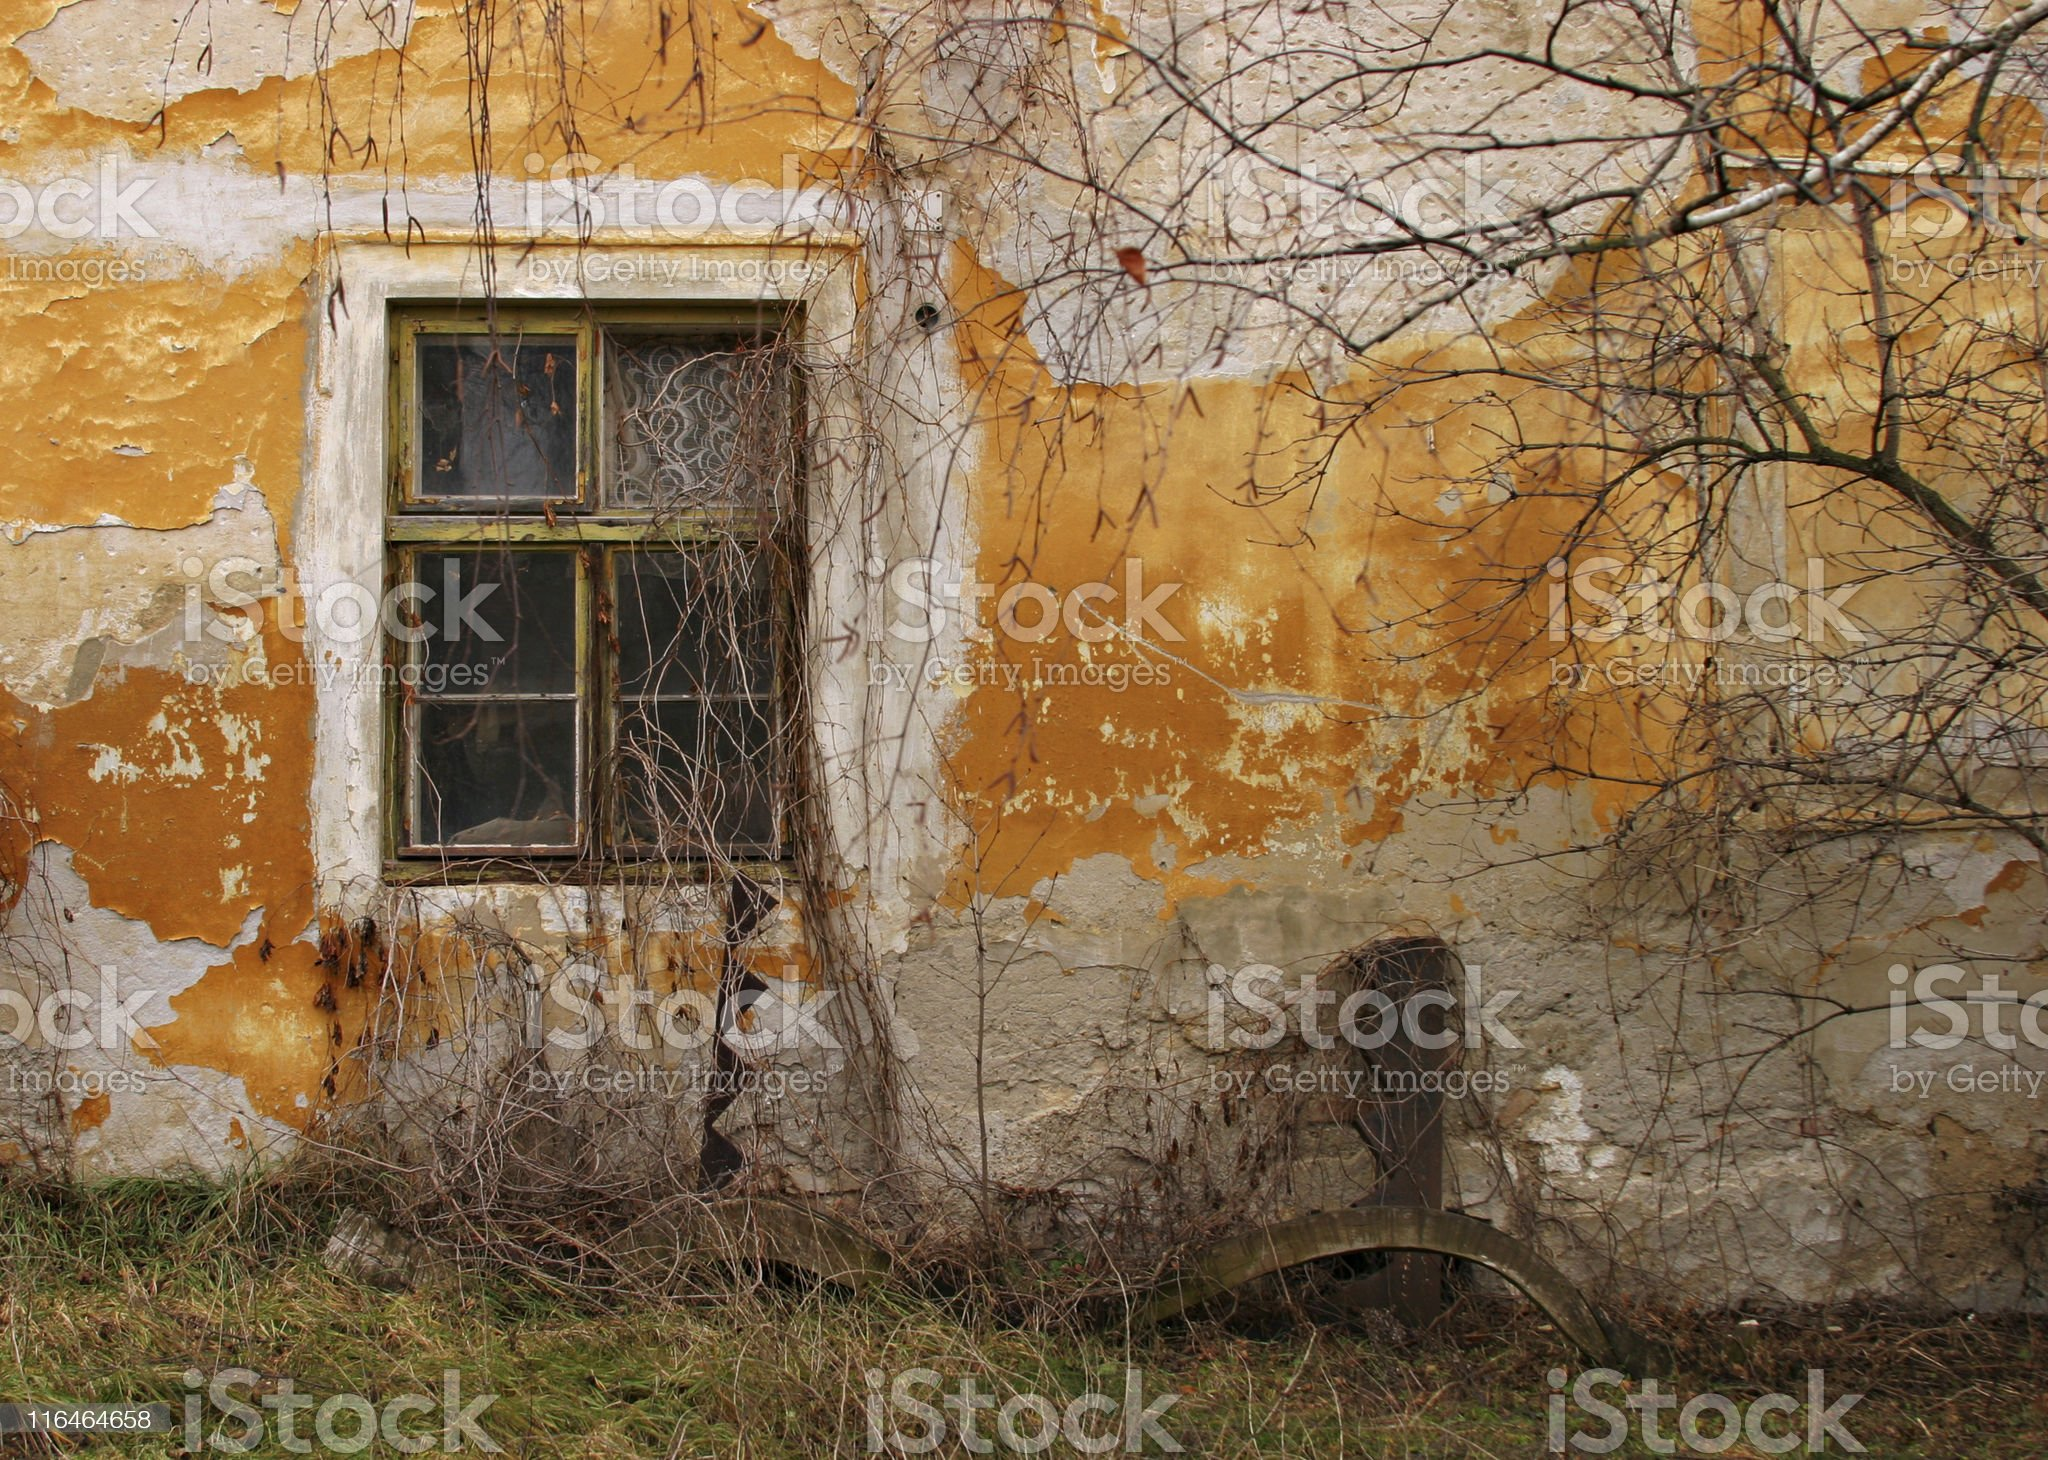 Grungy window and wall royalty-free stock photo